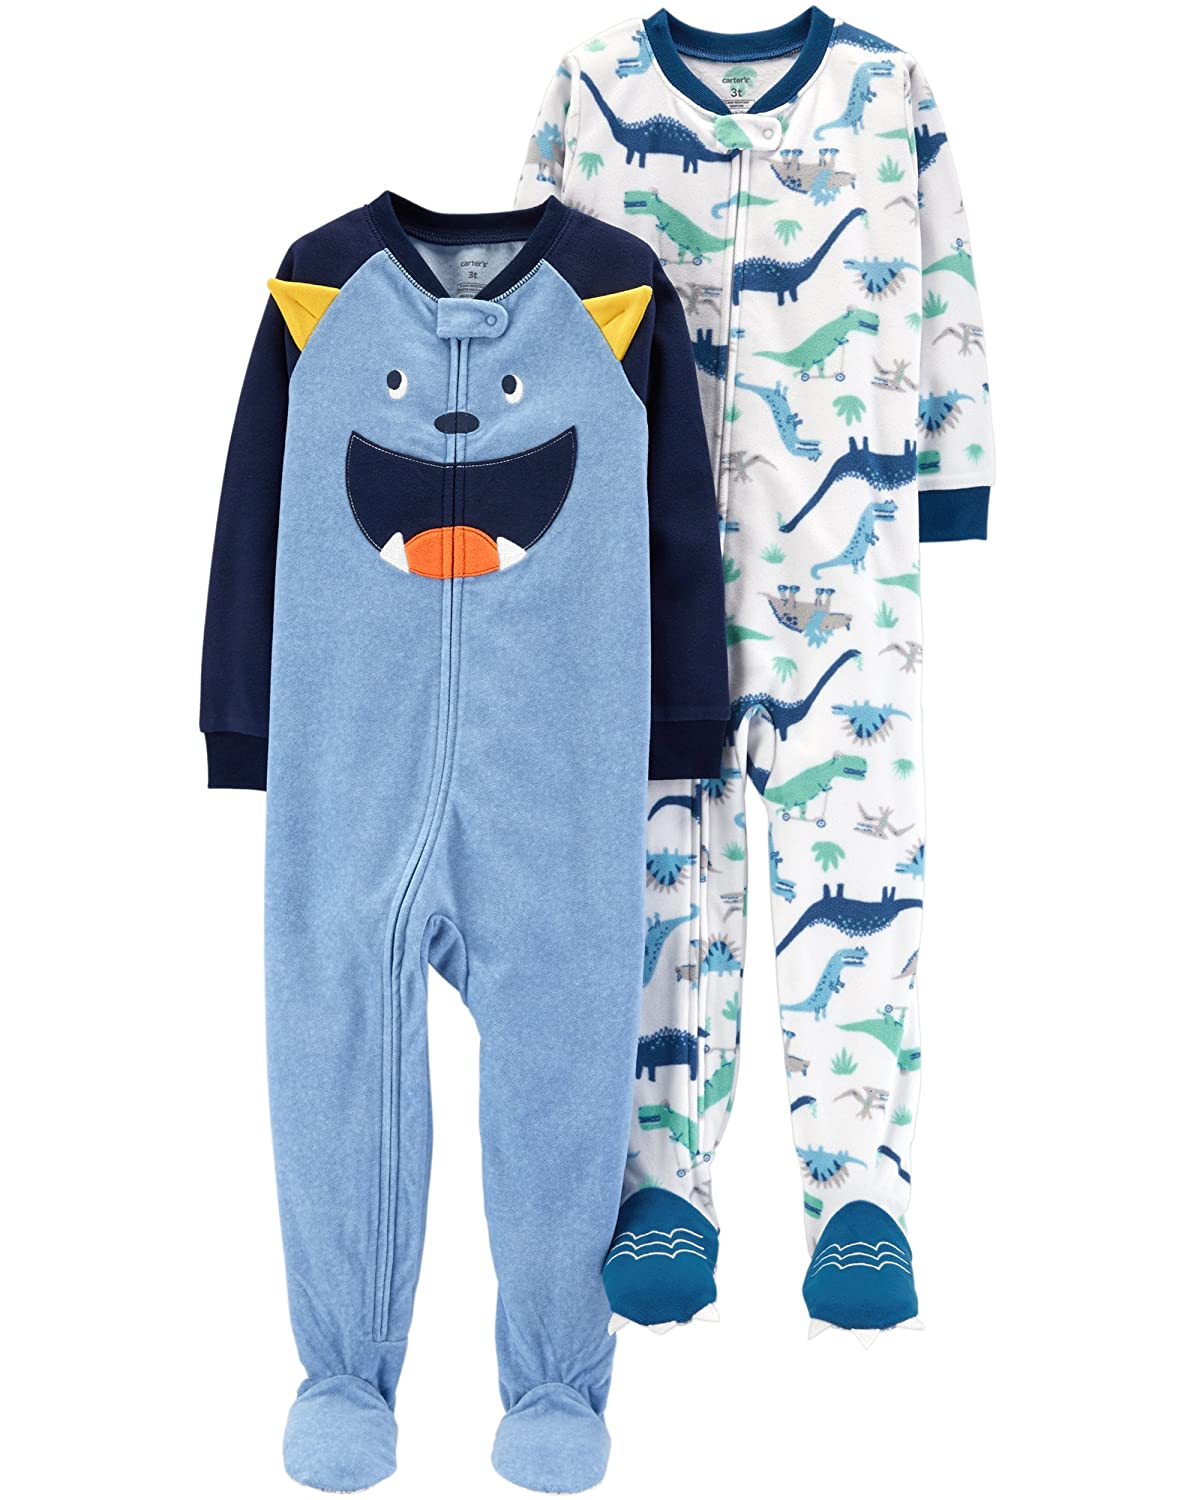 e34894c2b4f9 carter s Baby Boys  2-Pack Fleece Pajamas  Amazon.in  Clothing ...